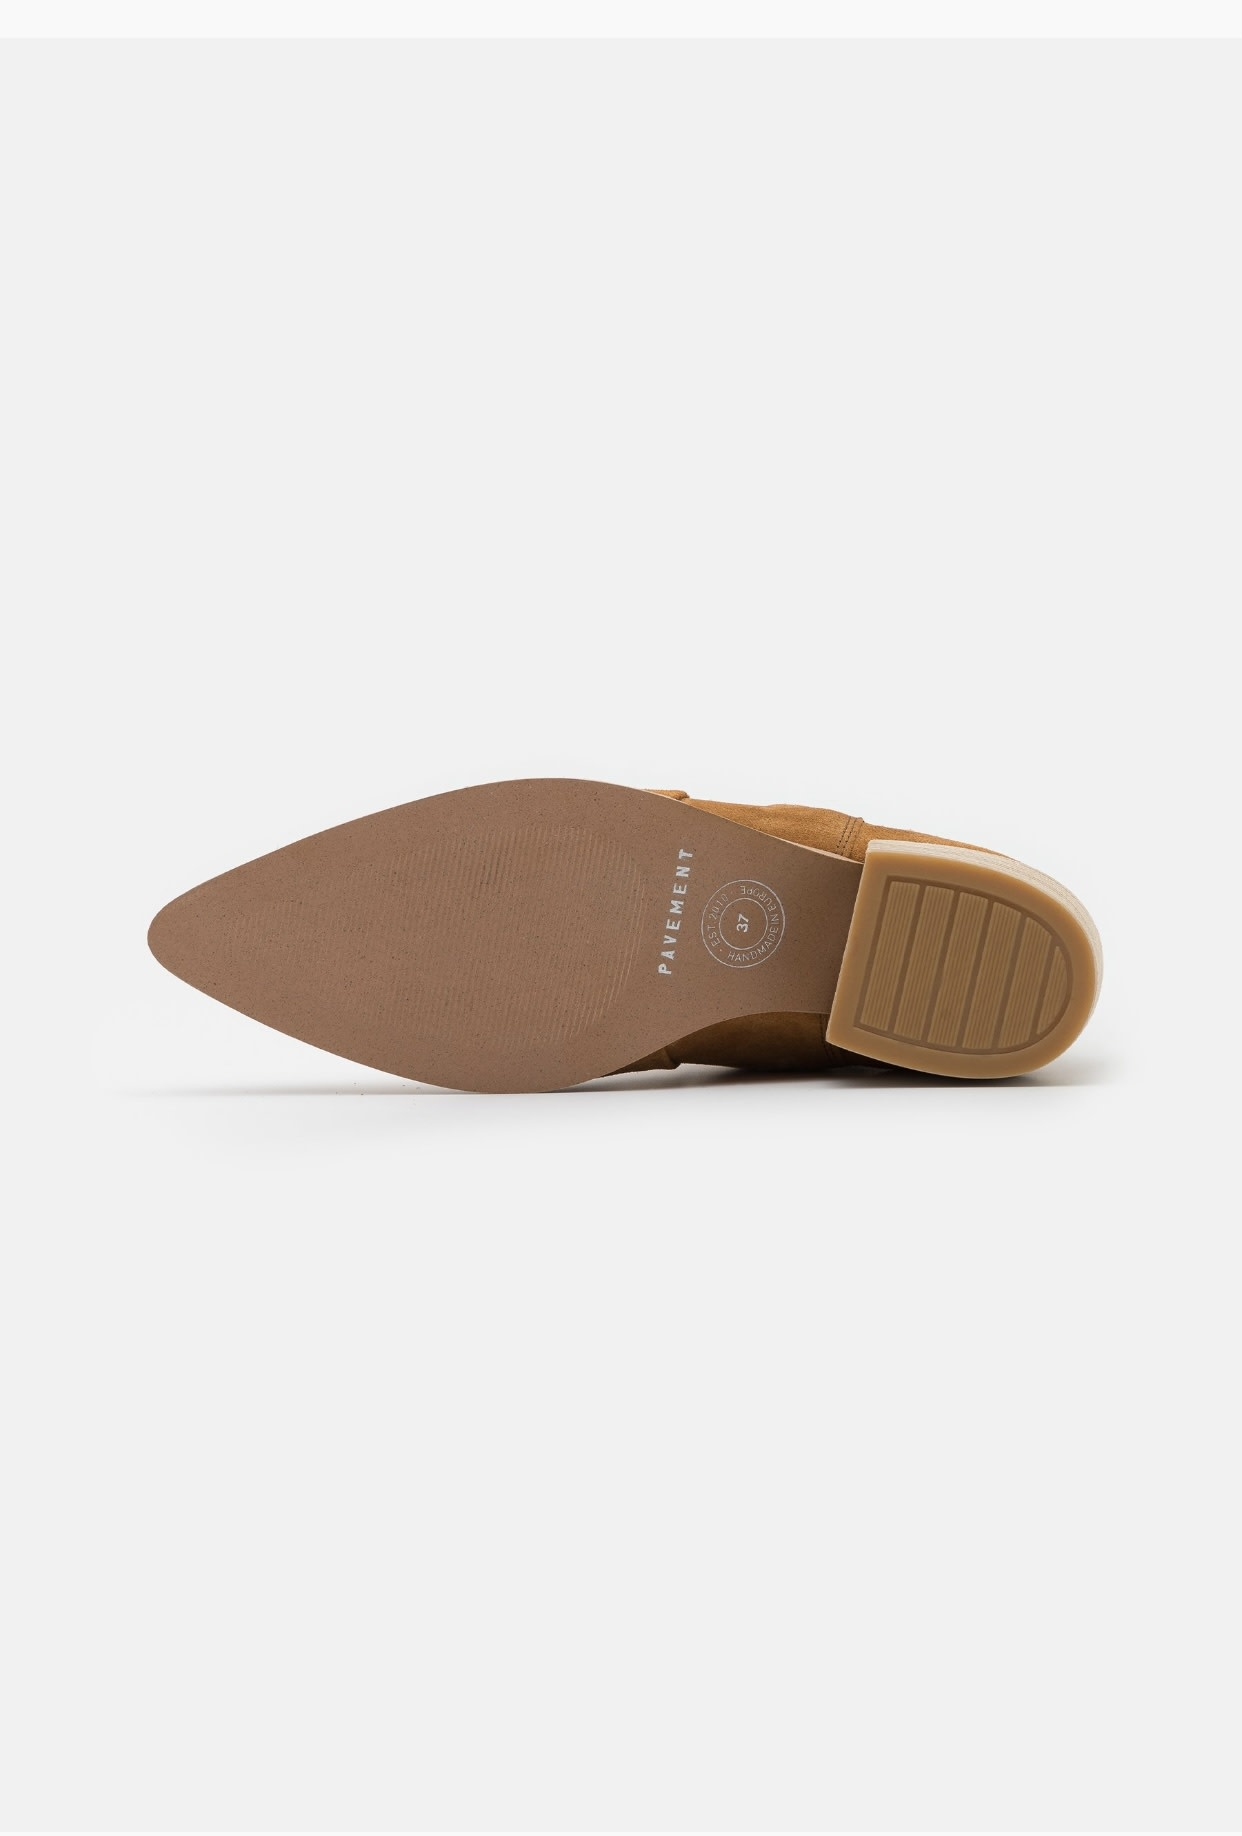 Boot Tan Suede-3